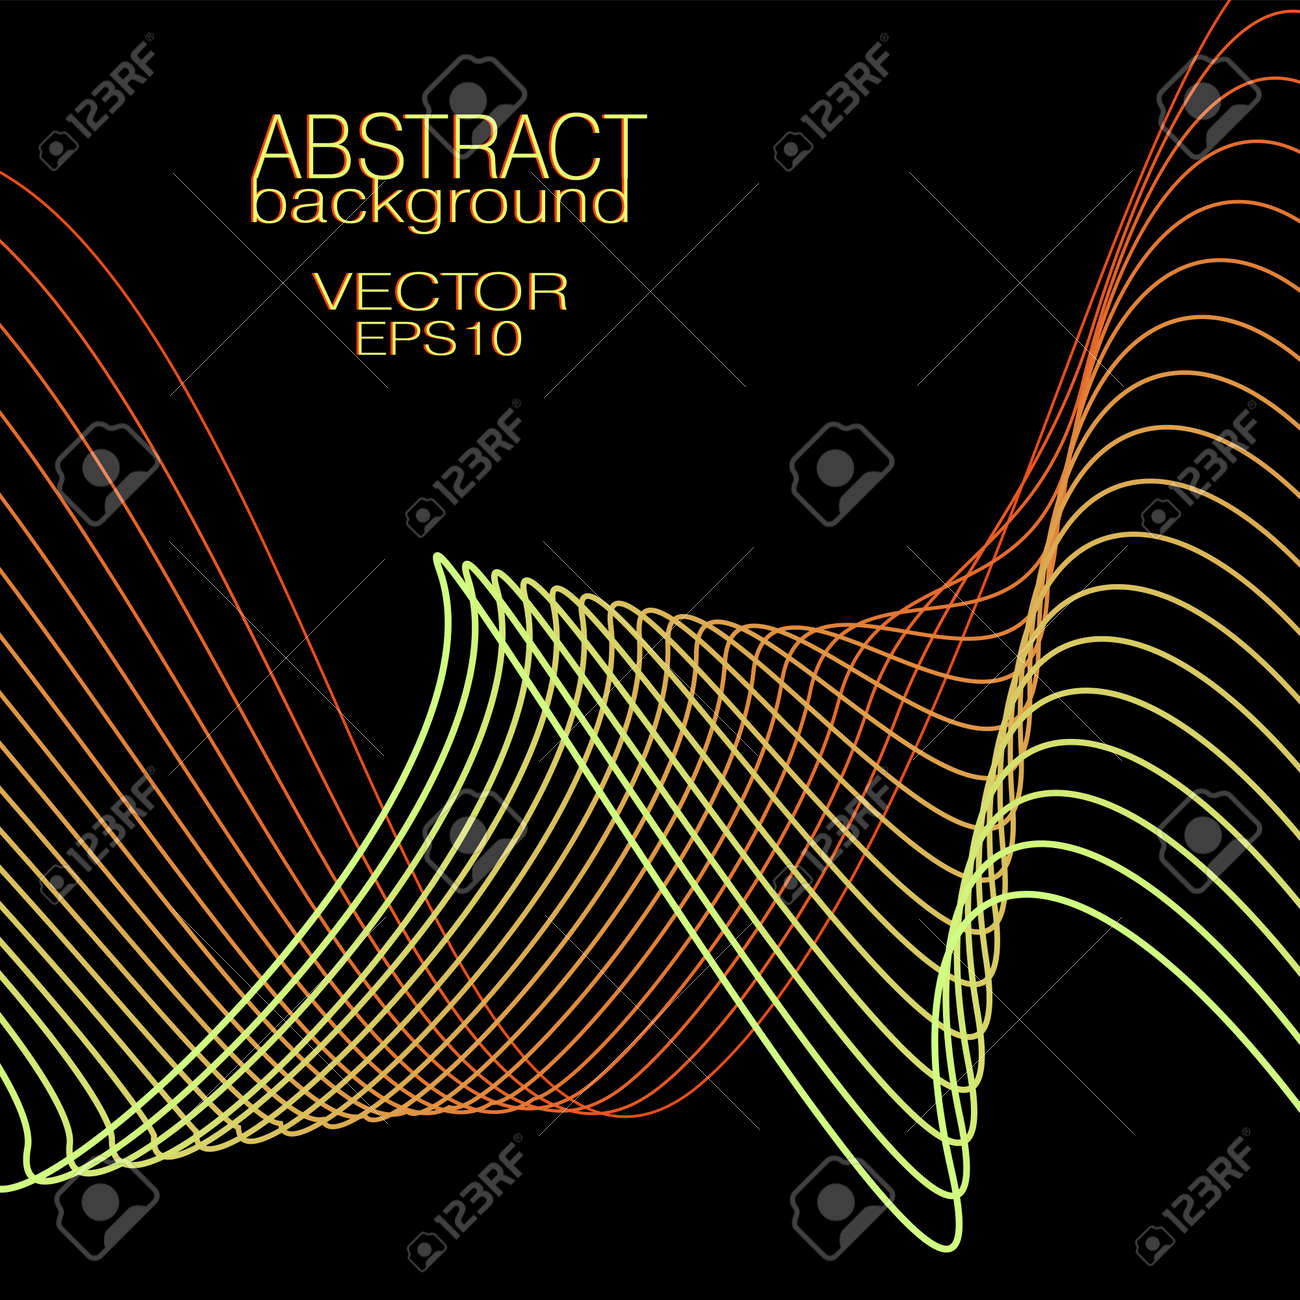 Yellow, red wavy lines. Abstract wave pattern. Vector squiggly curves. Black background. Bright colored gradient. Technology design element for landing page, banner, poster, leaflet, flyer, website. EPS10 illustration - 167097436